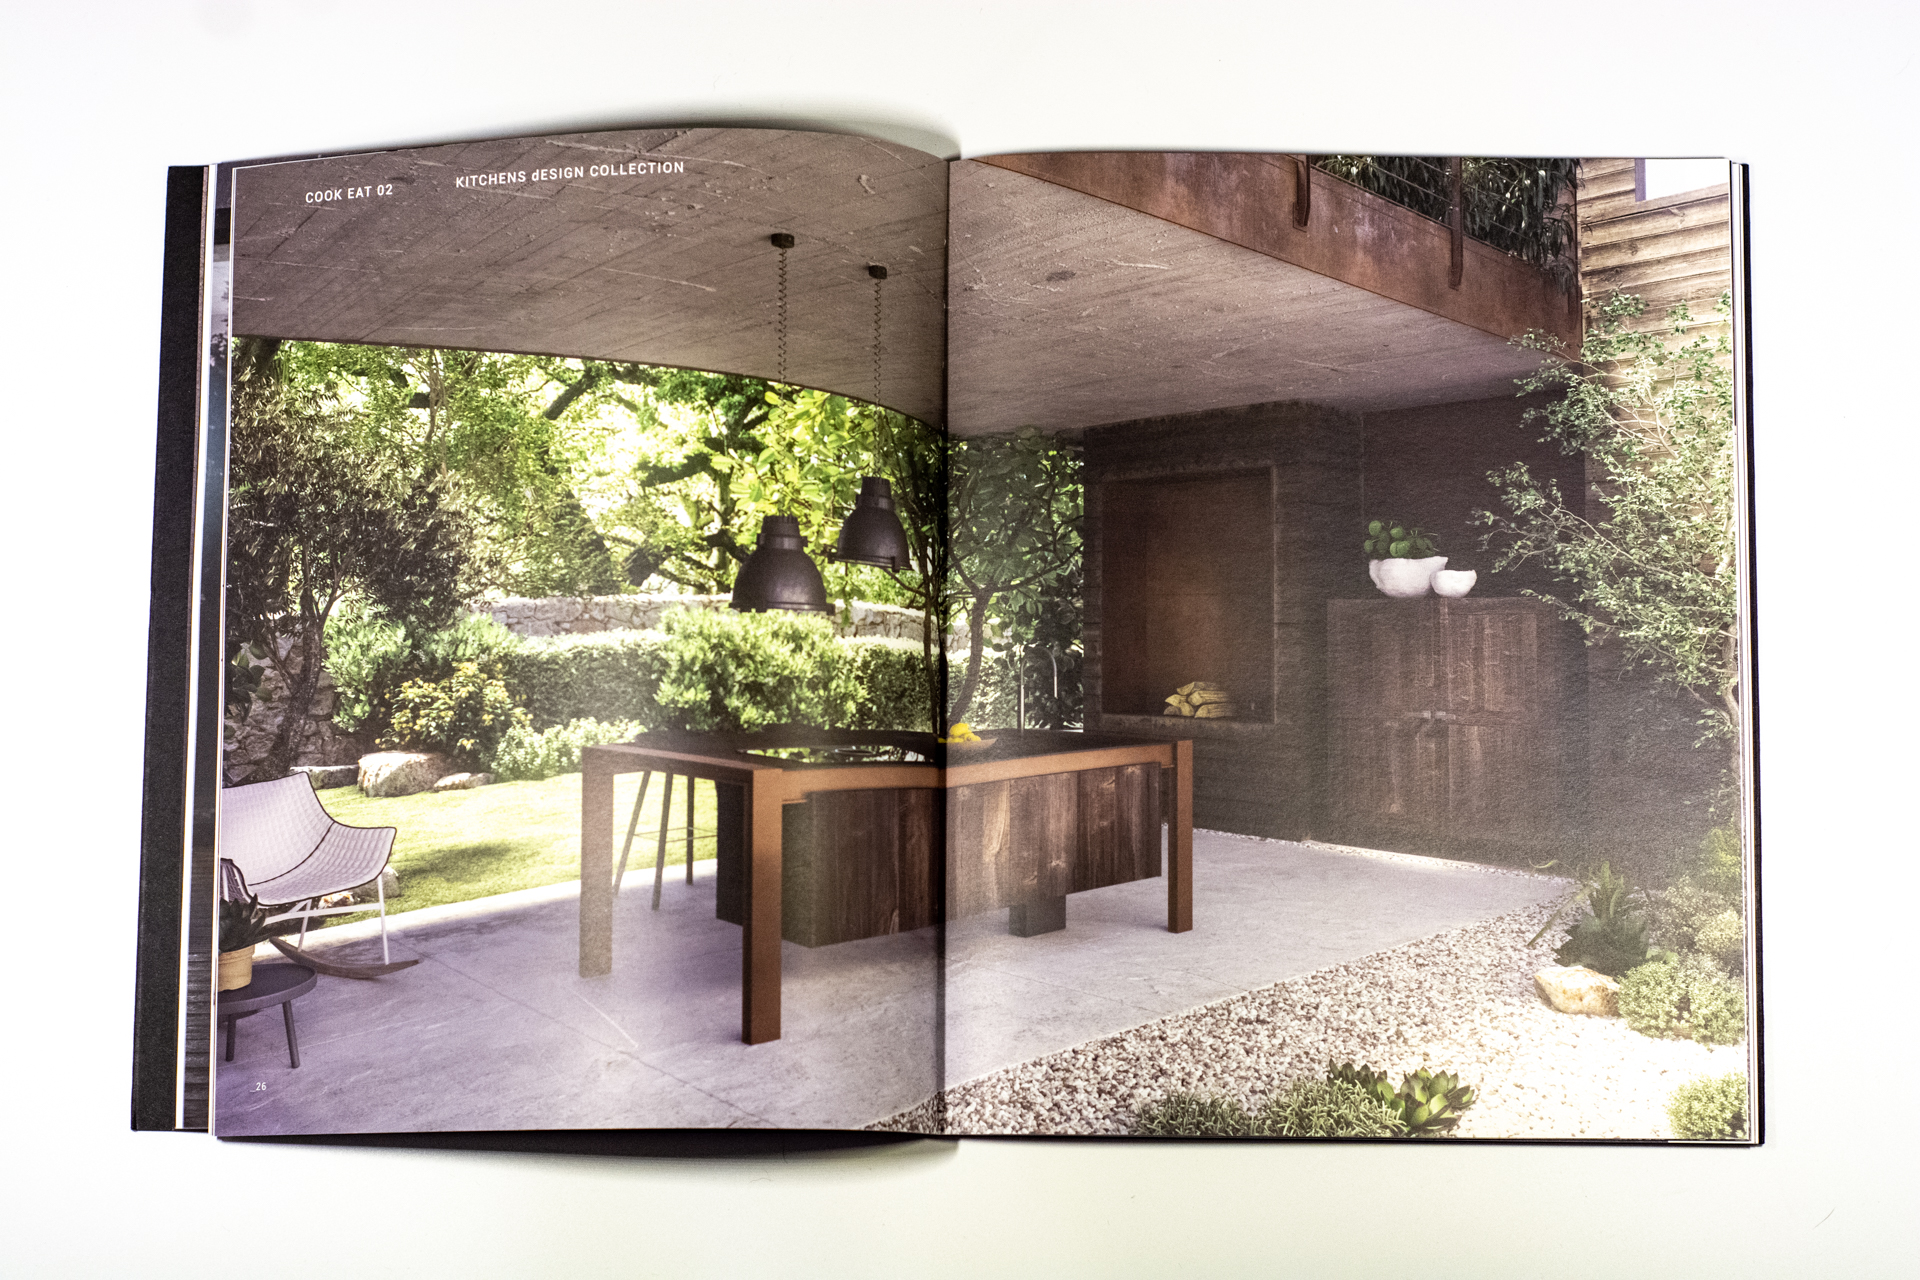 pedini-cookeat-design-catalogo